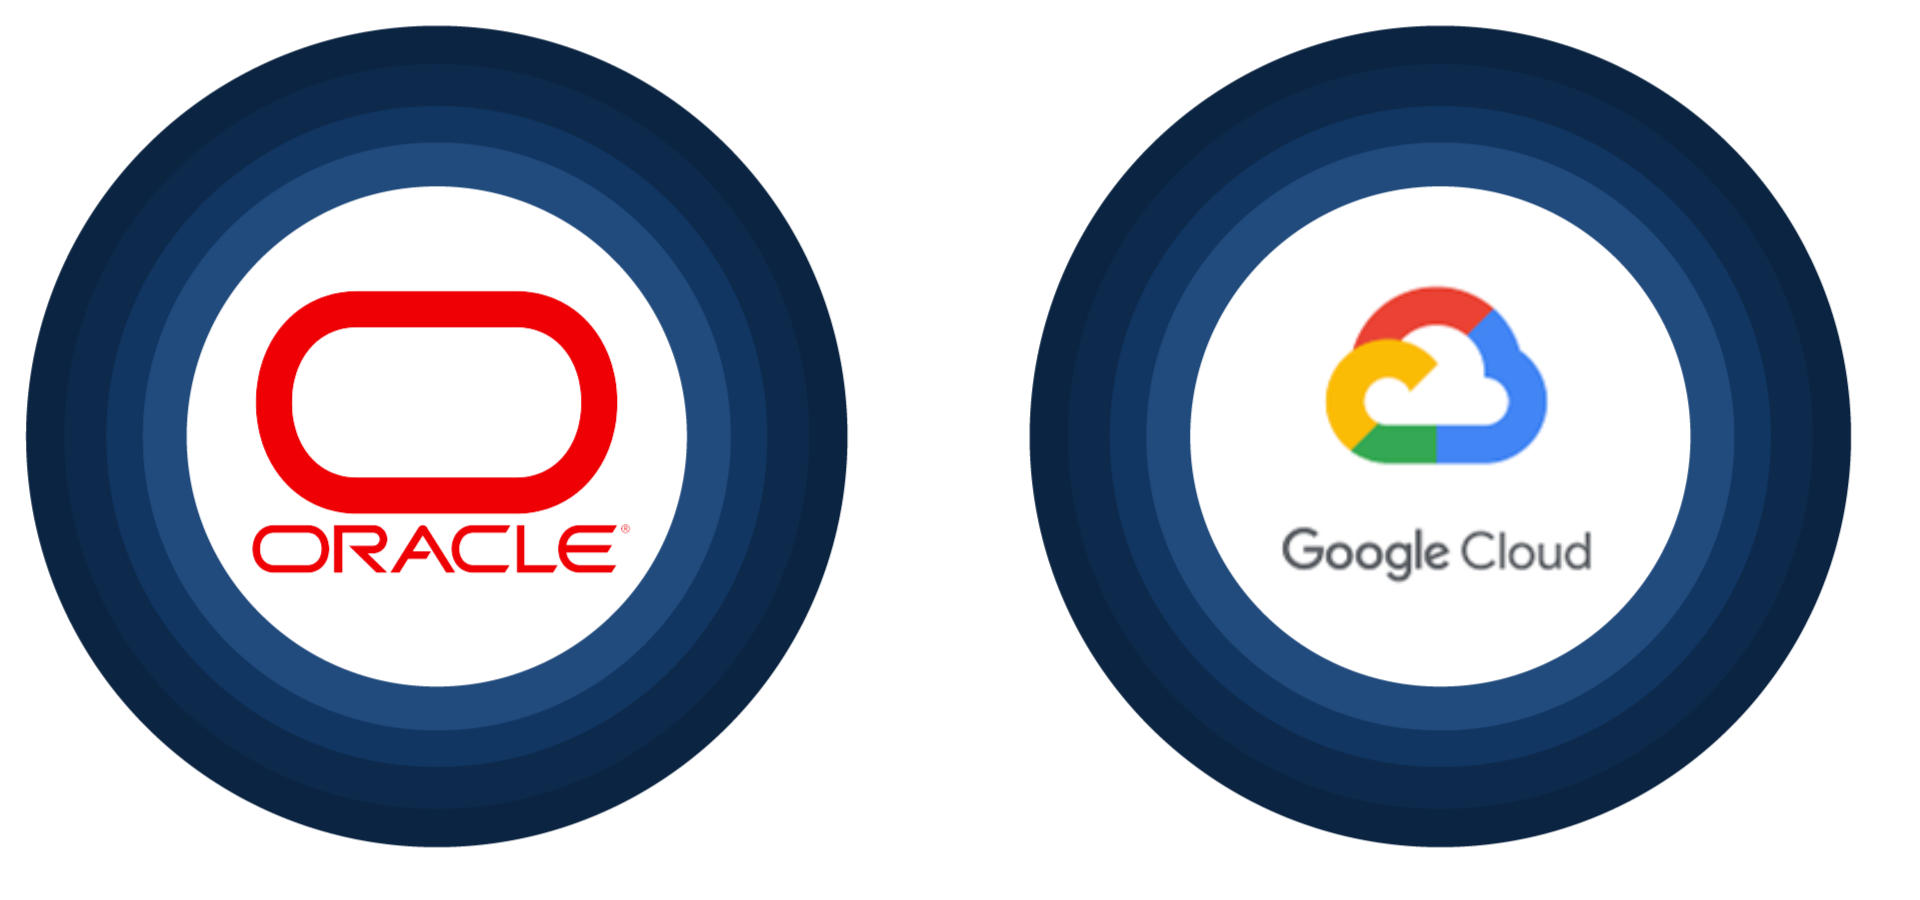 Oracle and Google Cloud